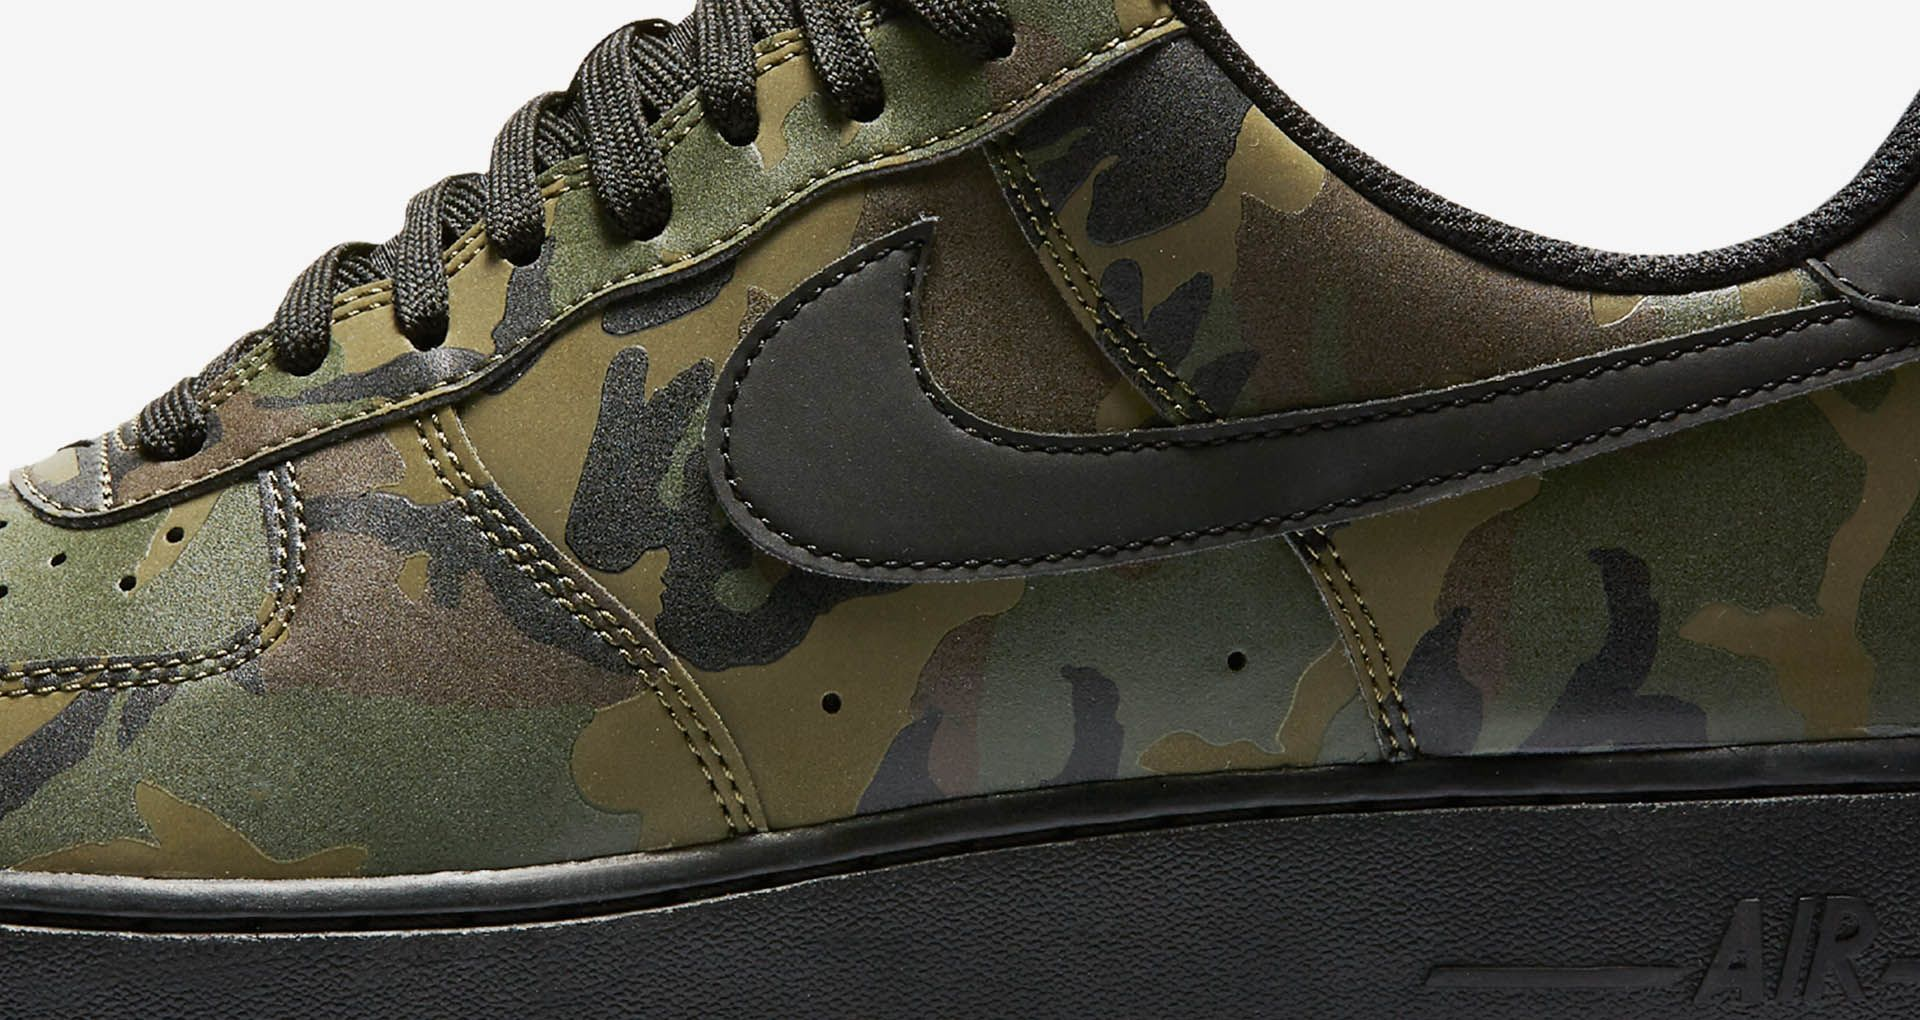 ee67a09ad80e Reflective detailing throughout the upper adds a shine once exposed to  light. A classic Air Force 1 sole in black completes the camo design.